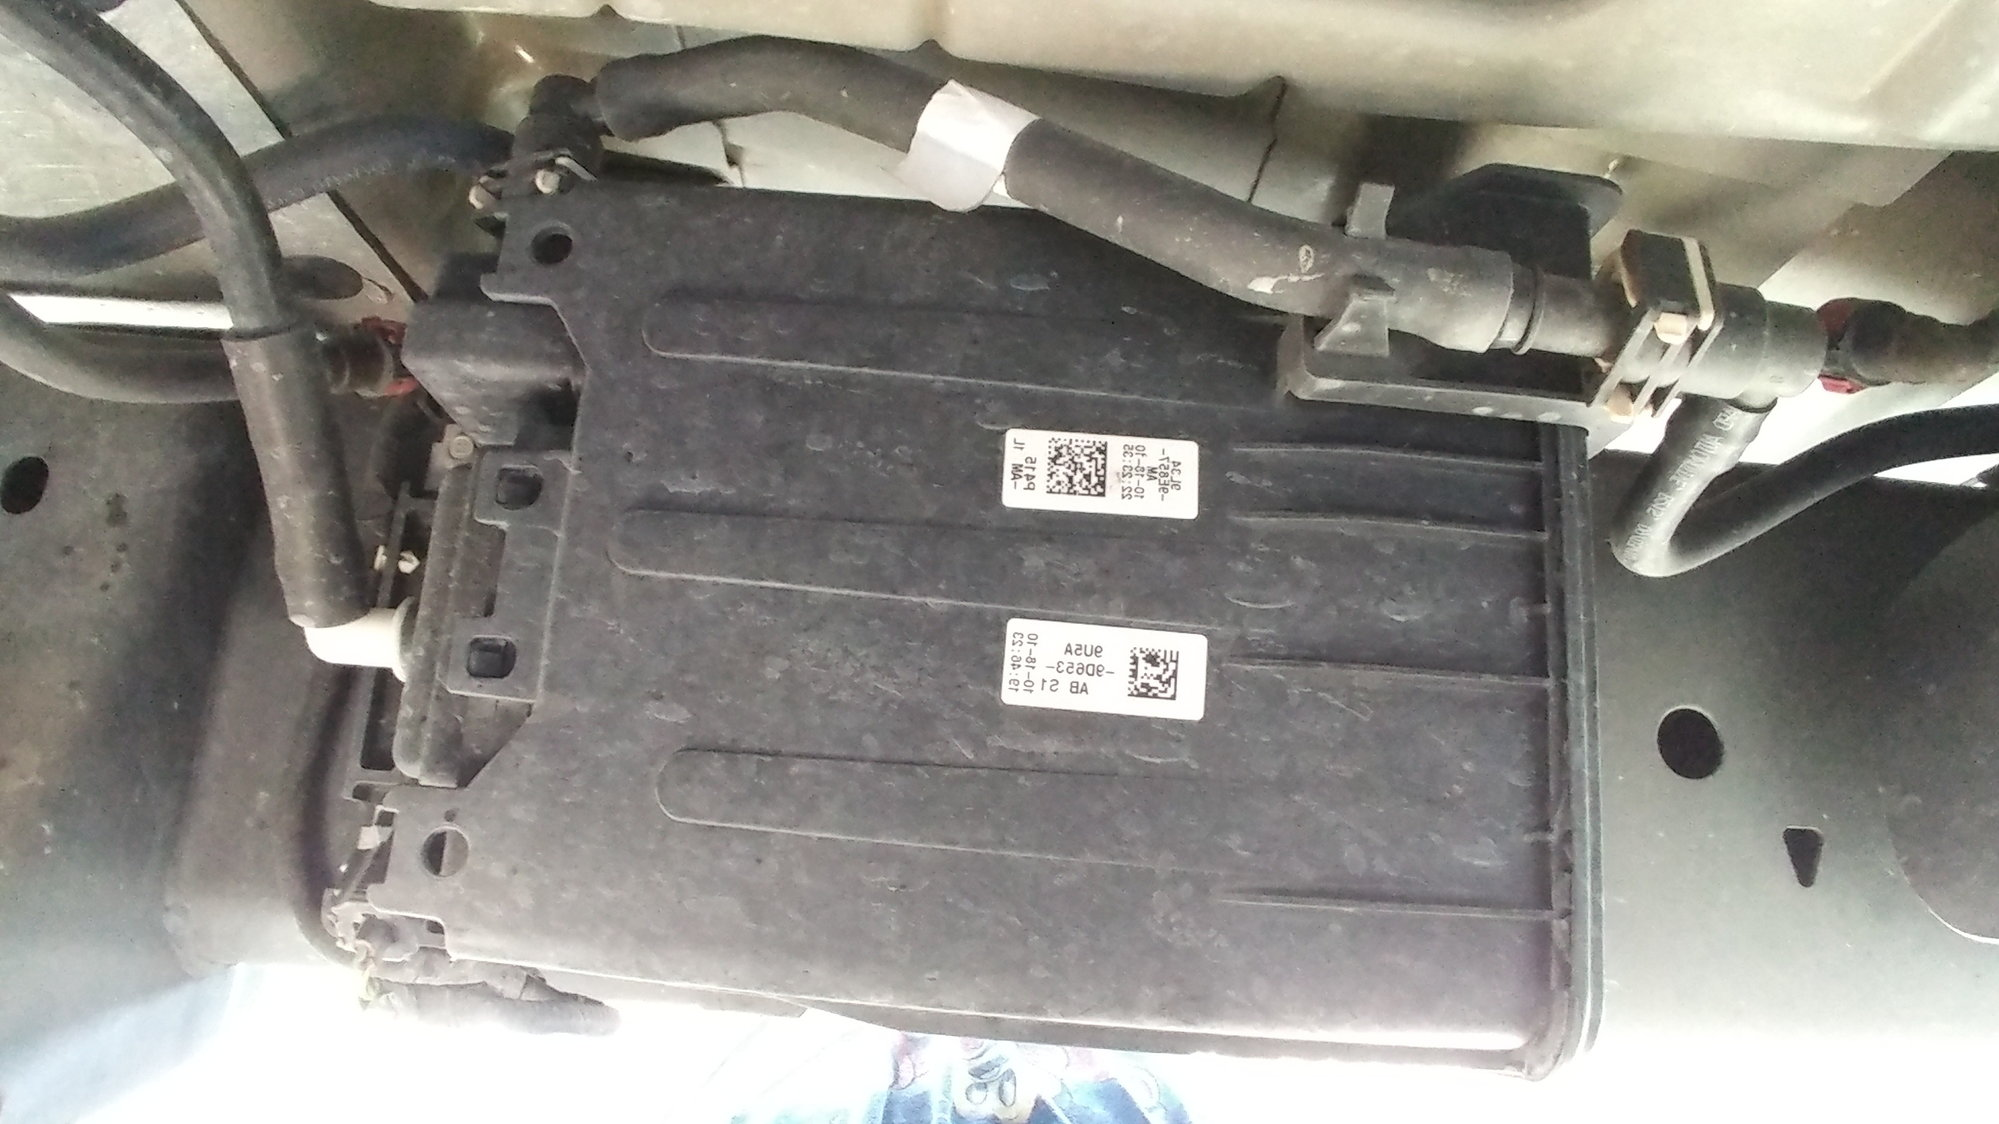 2010 F150 Fuel Filter Ford Forum Community Of Truck Fans Replacement There Is A Big Rectangle Black Box On The Frame Where Usually Any Clue This Inline Filer And What